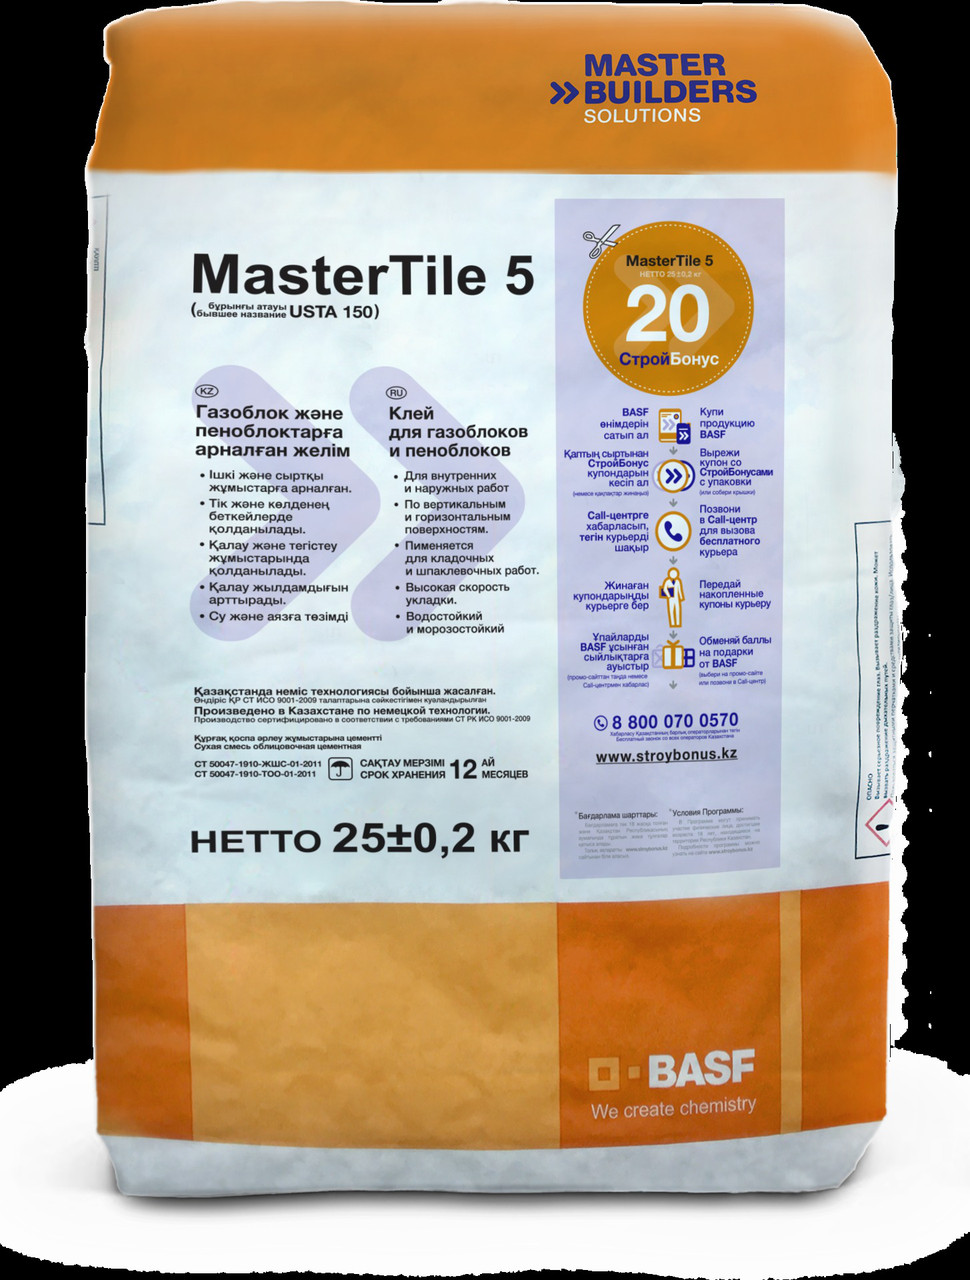 MasterTile FLX 24 GREY (Fleksmortel)